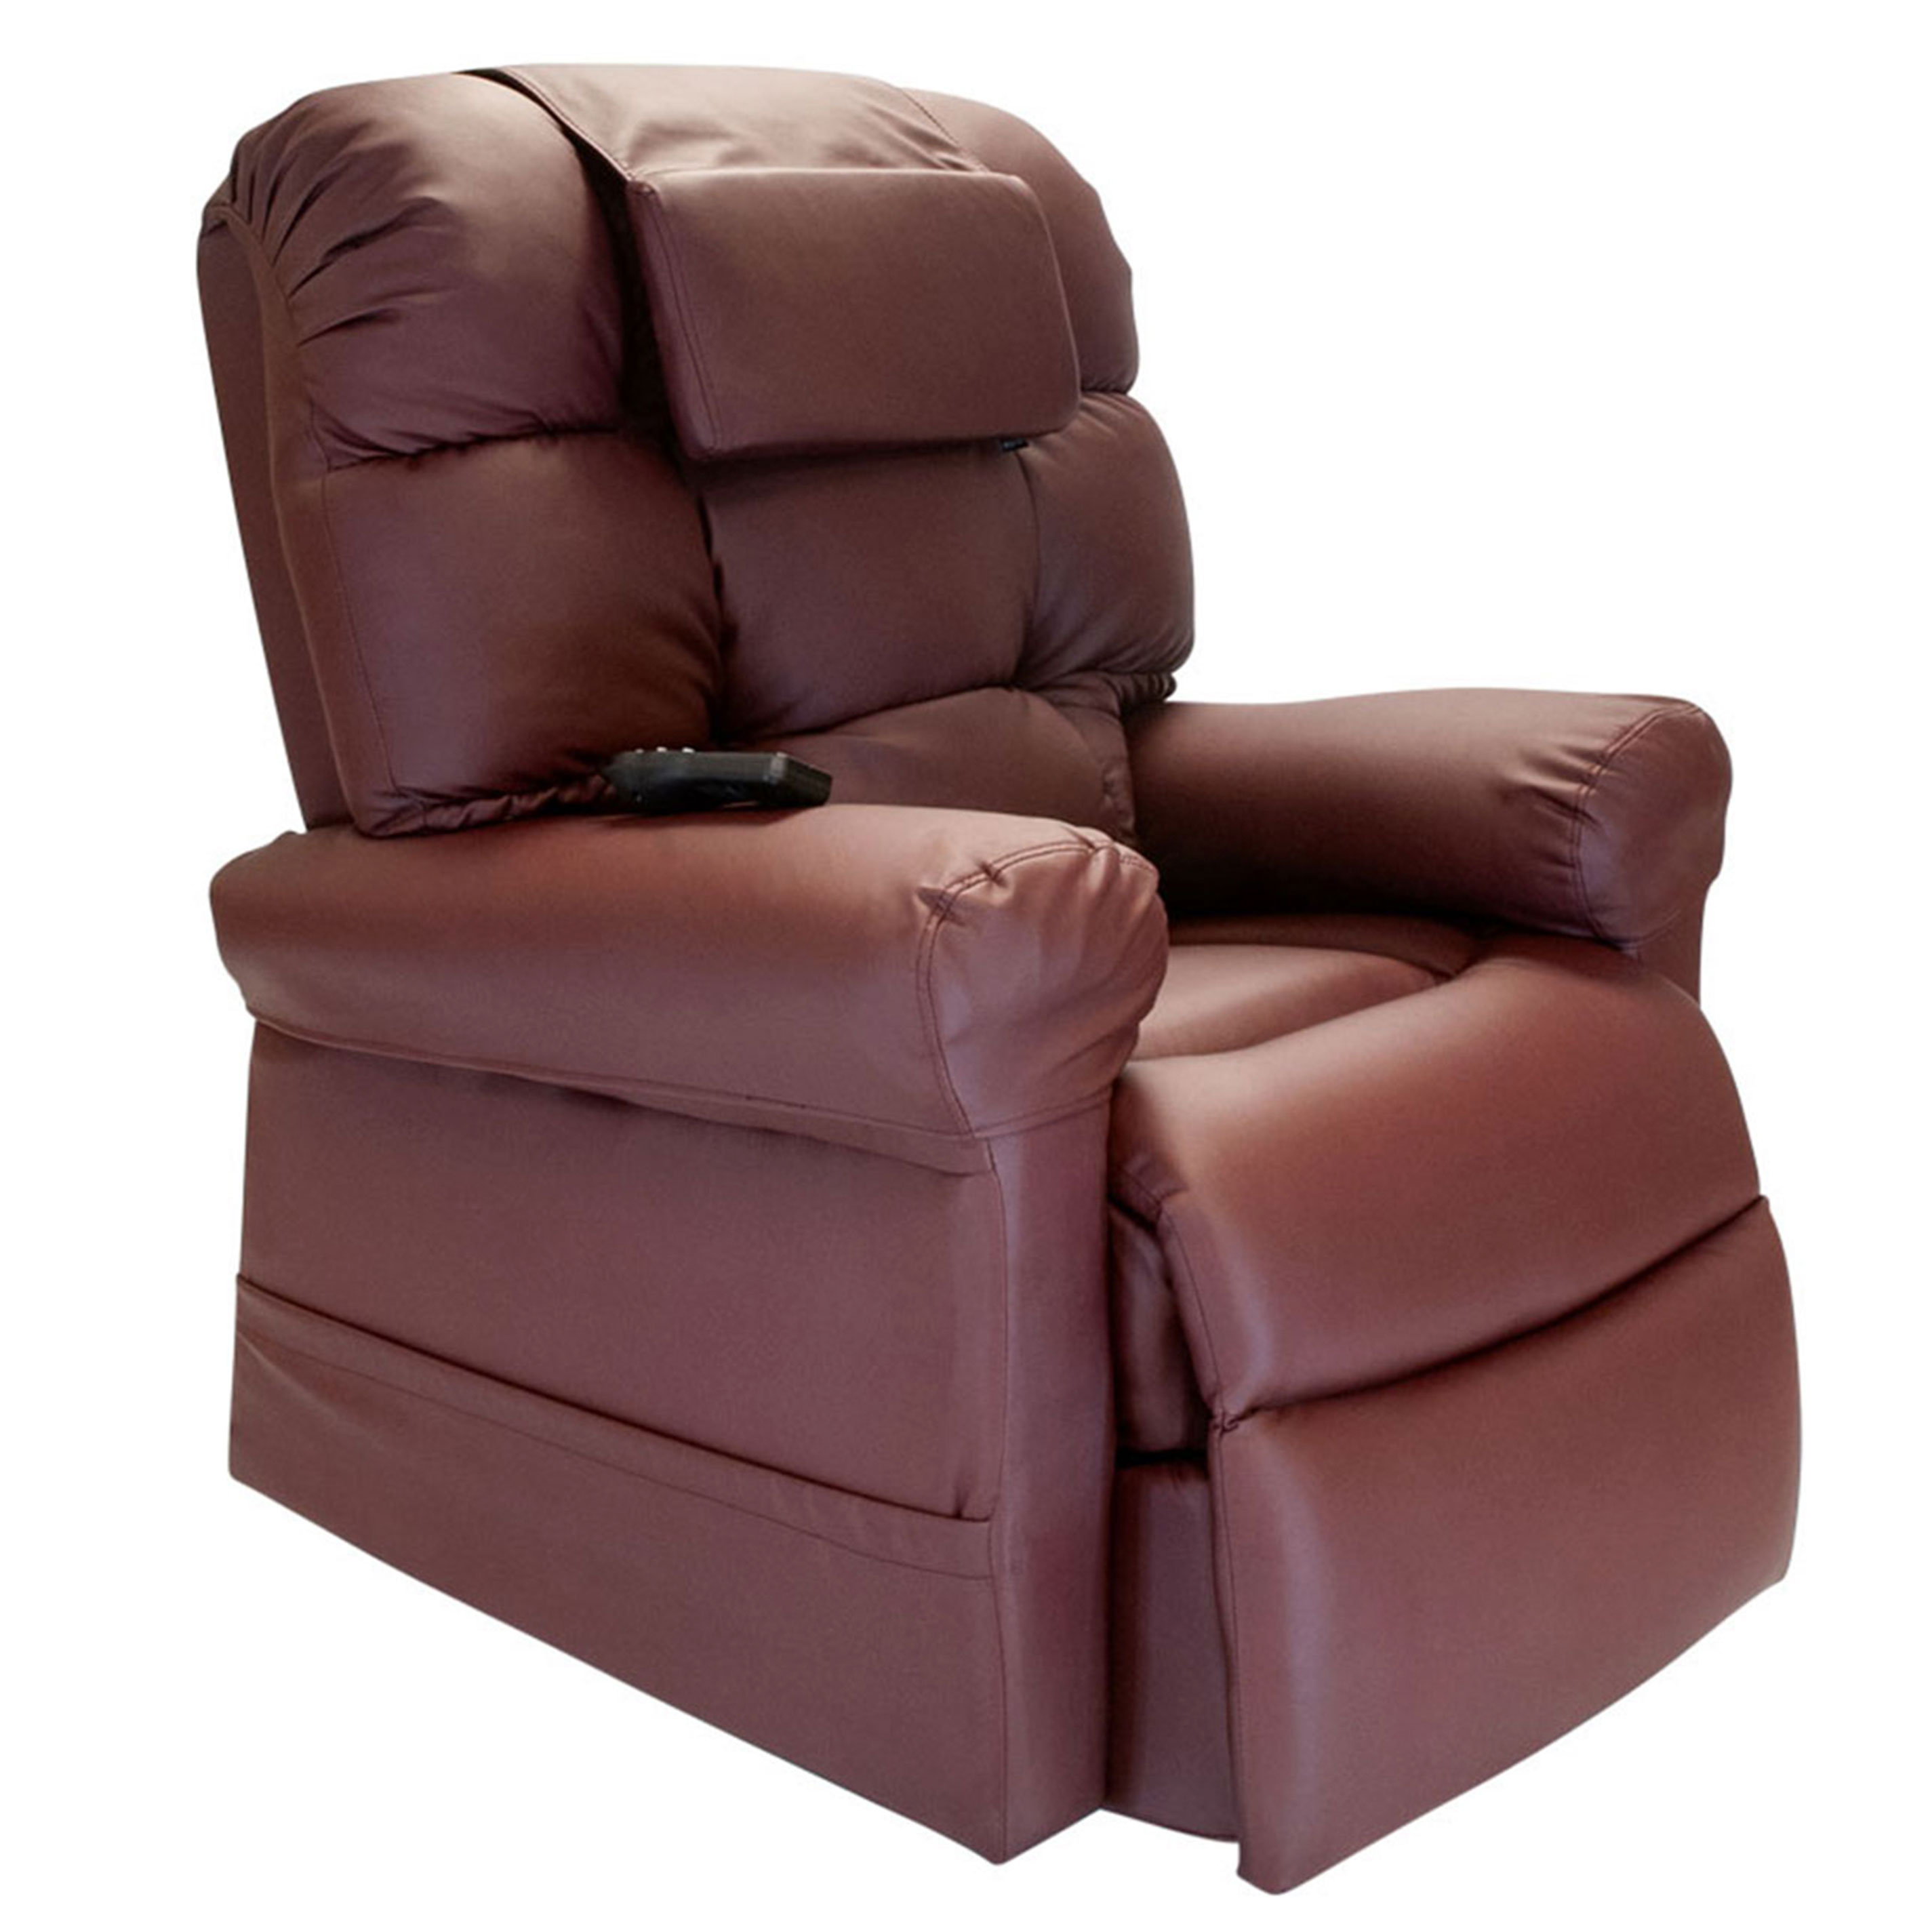 WiseLift 450 Sleeper, Lift Chair, Recliner Burgundy Enduralux Leather